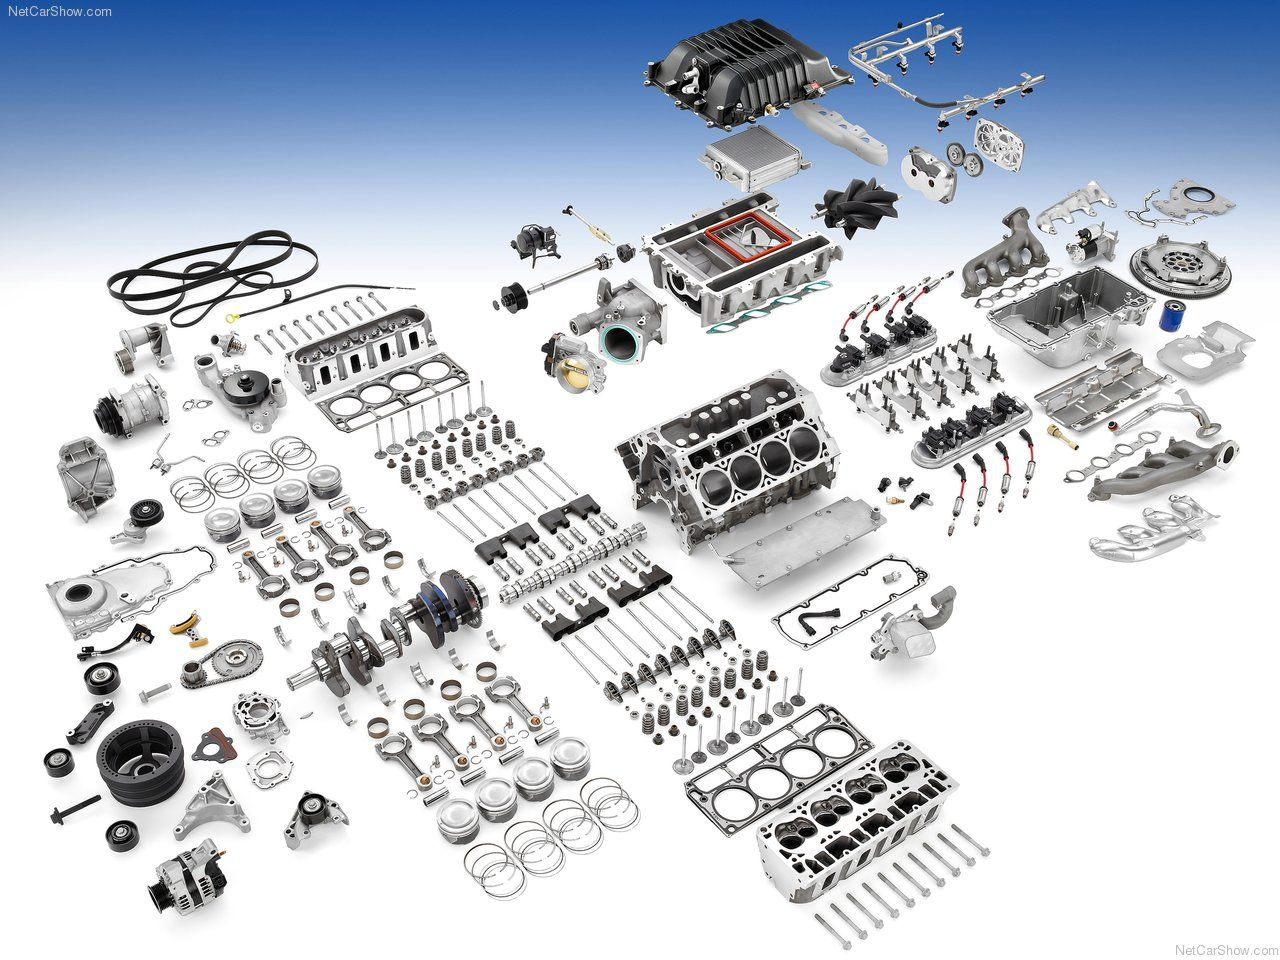 All of the parts that go into a Camaro ZL1 engine. [1280 x 960 ...